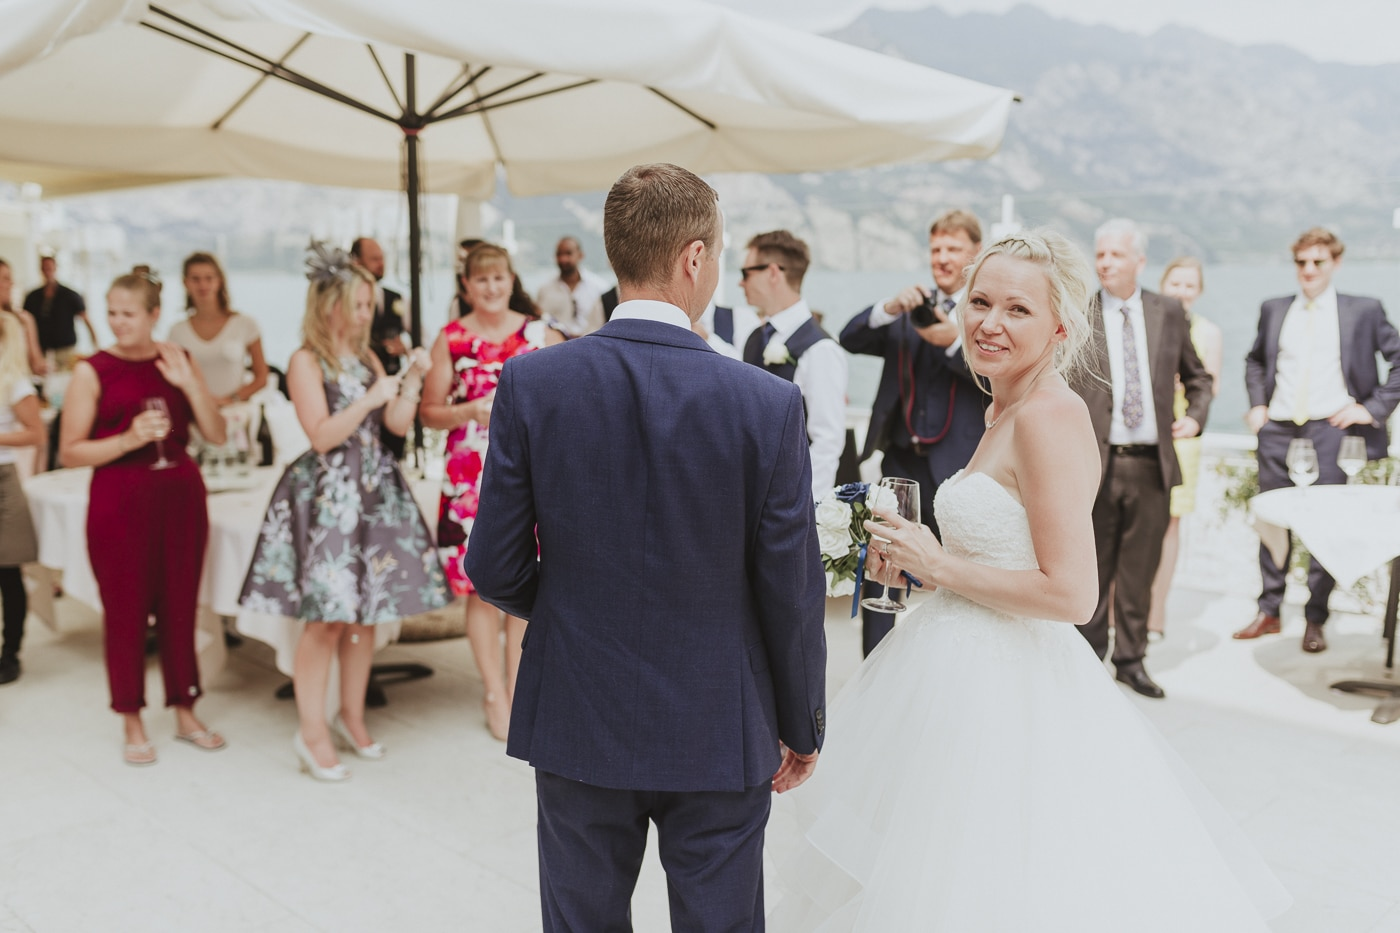 Bride and groom looking back as they walk into their wedding reception with all their guests and mountains in the background by Joshua Wyborn